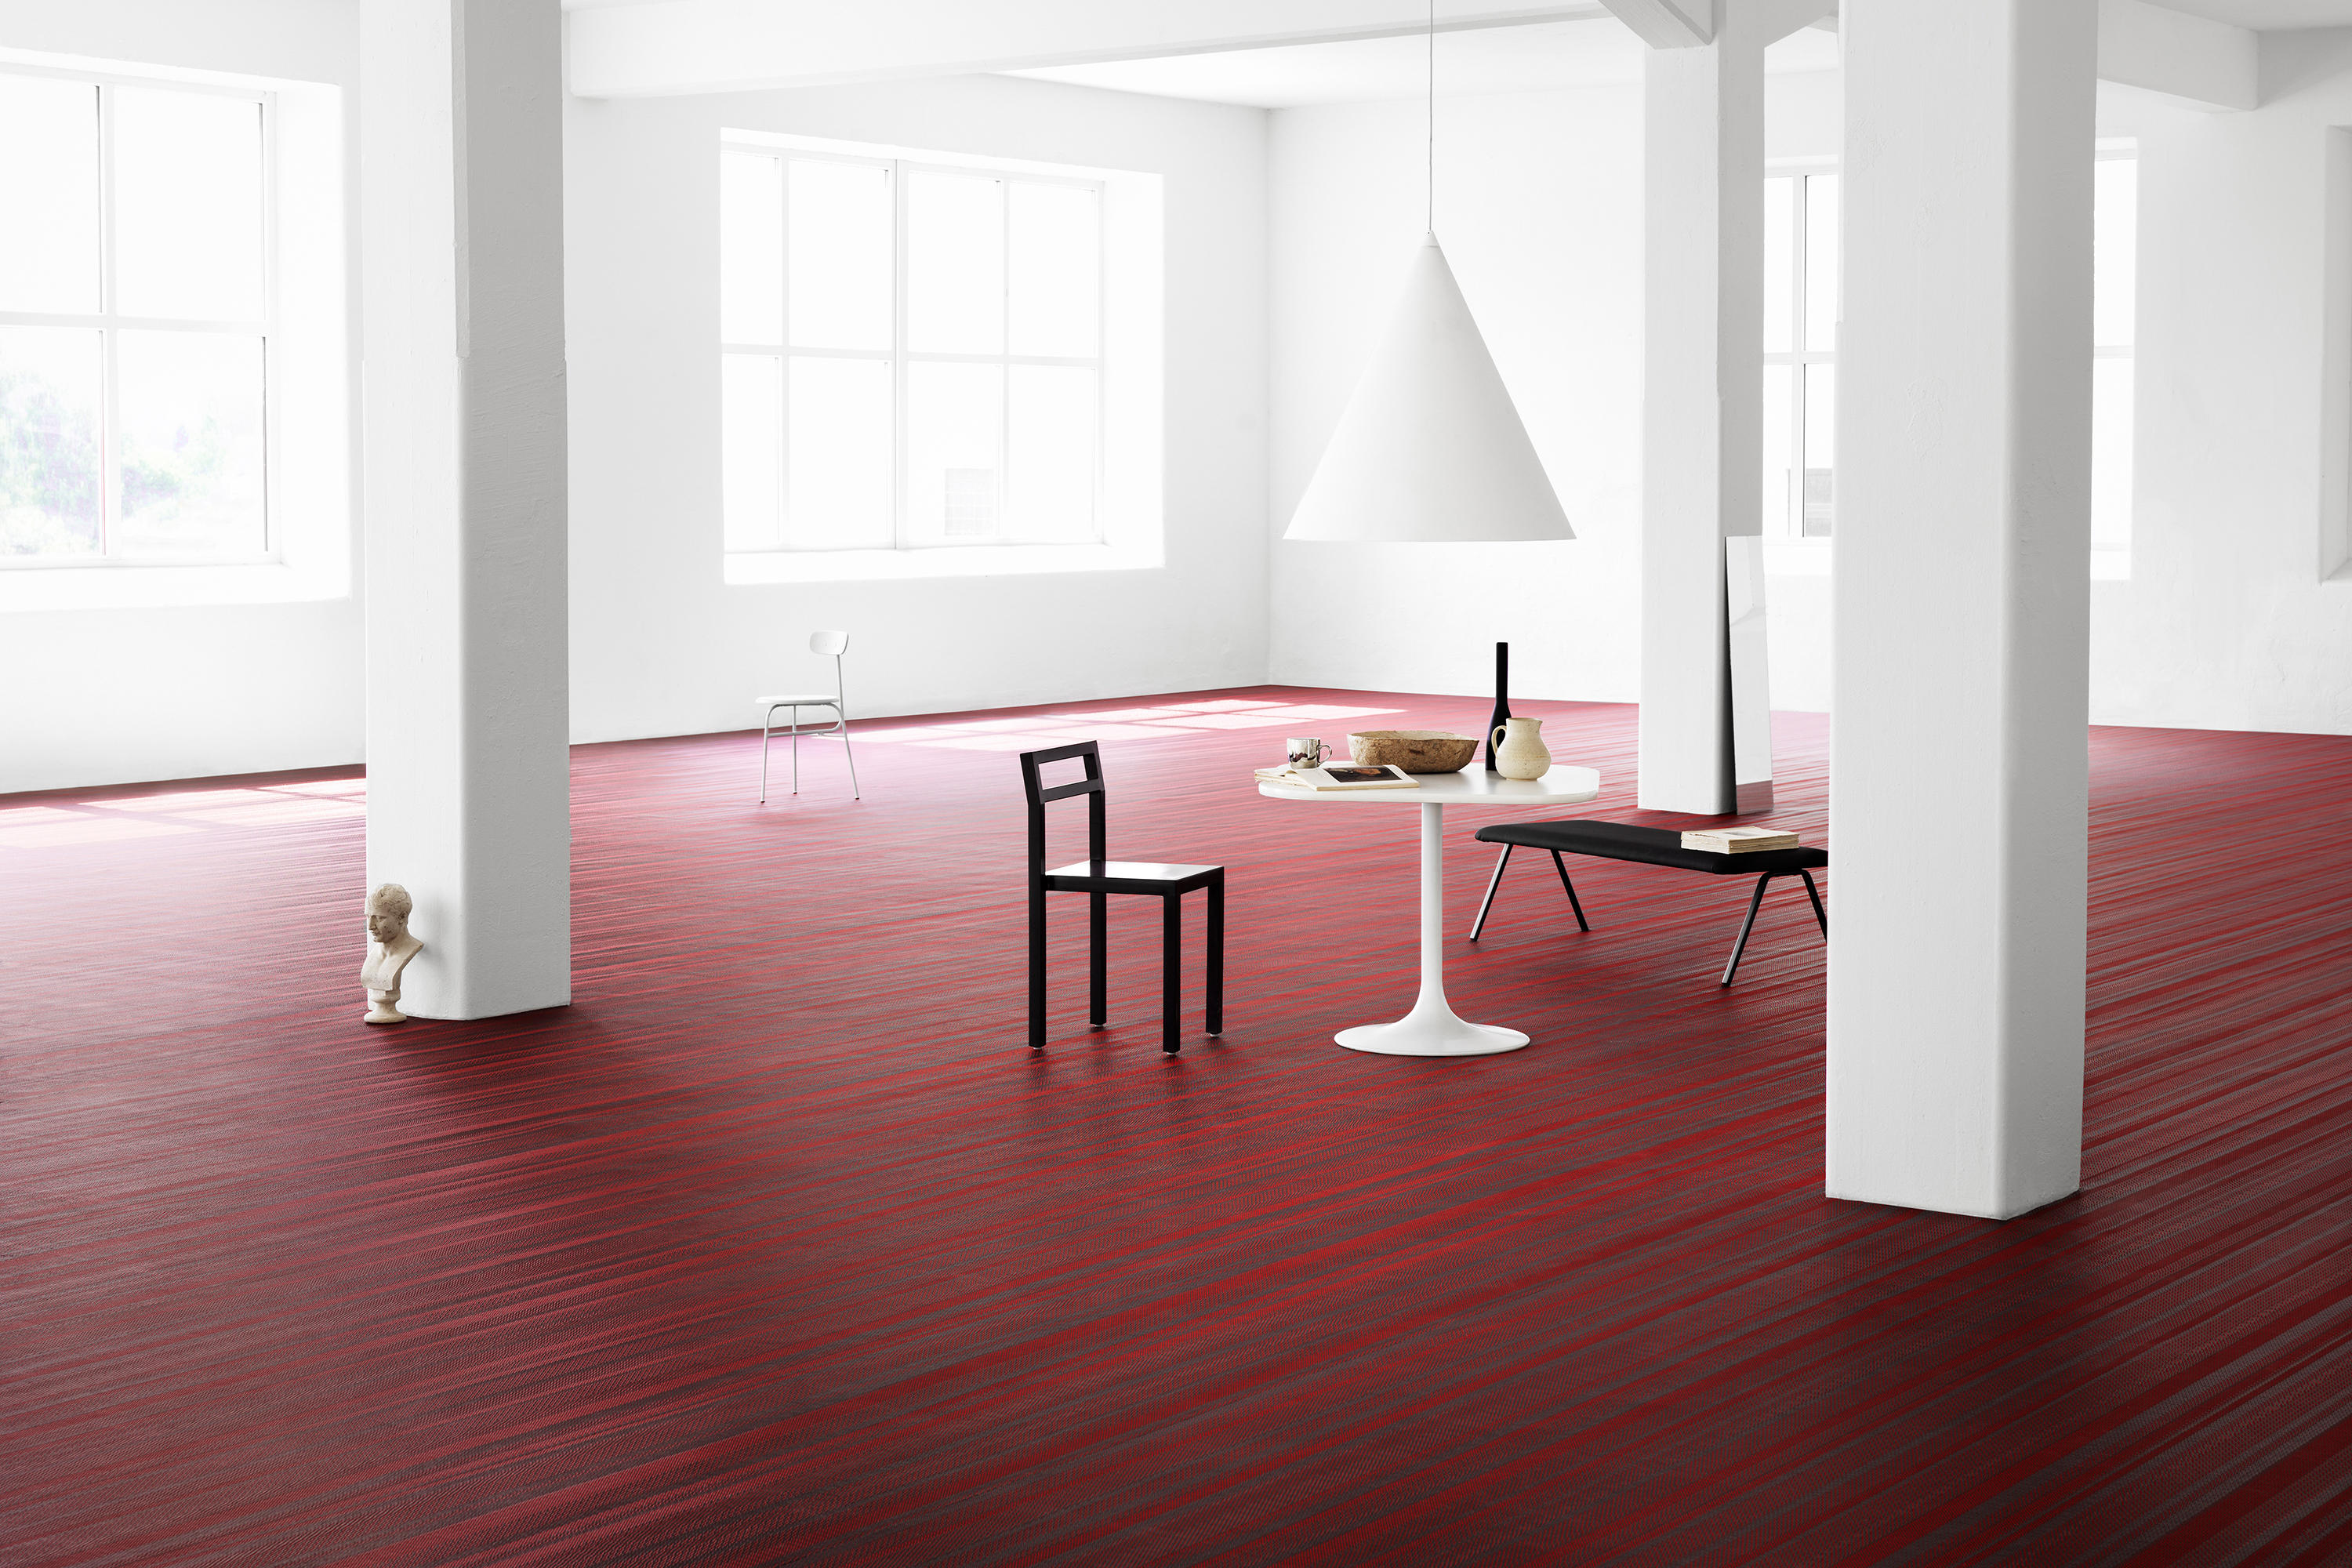 Bolon by jean nouvel design no 6 wall to wall carpets for Jean nouvel design